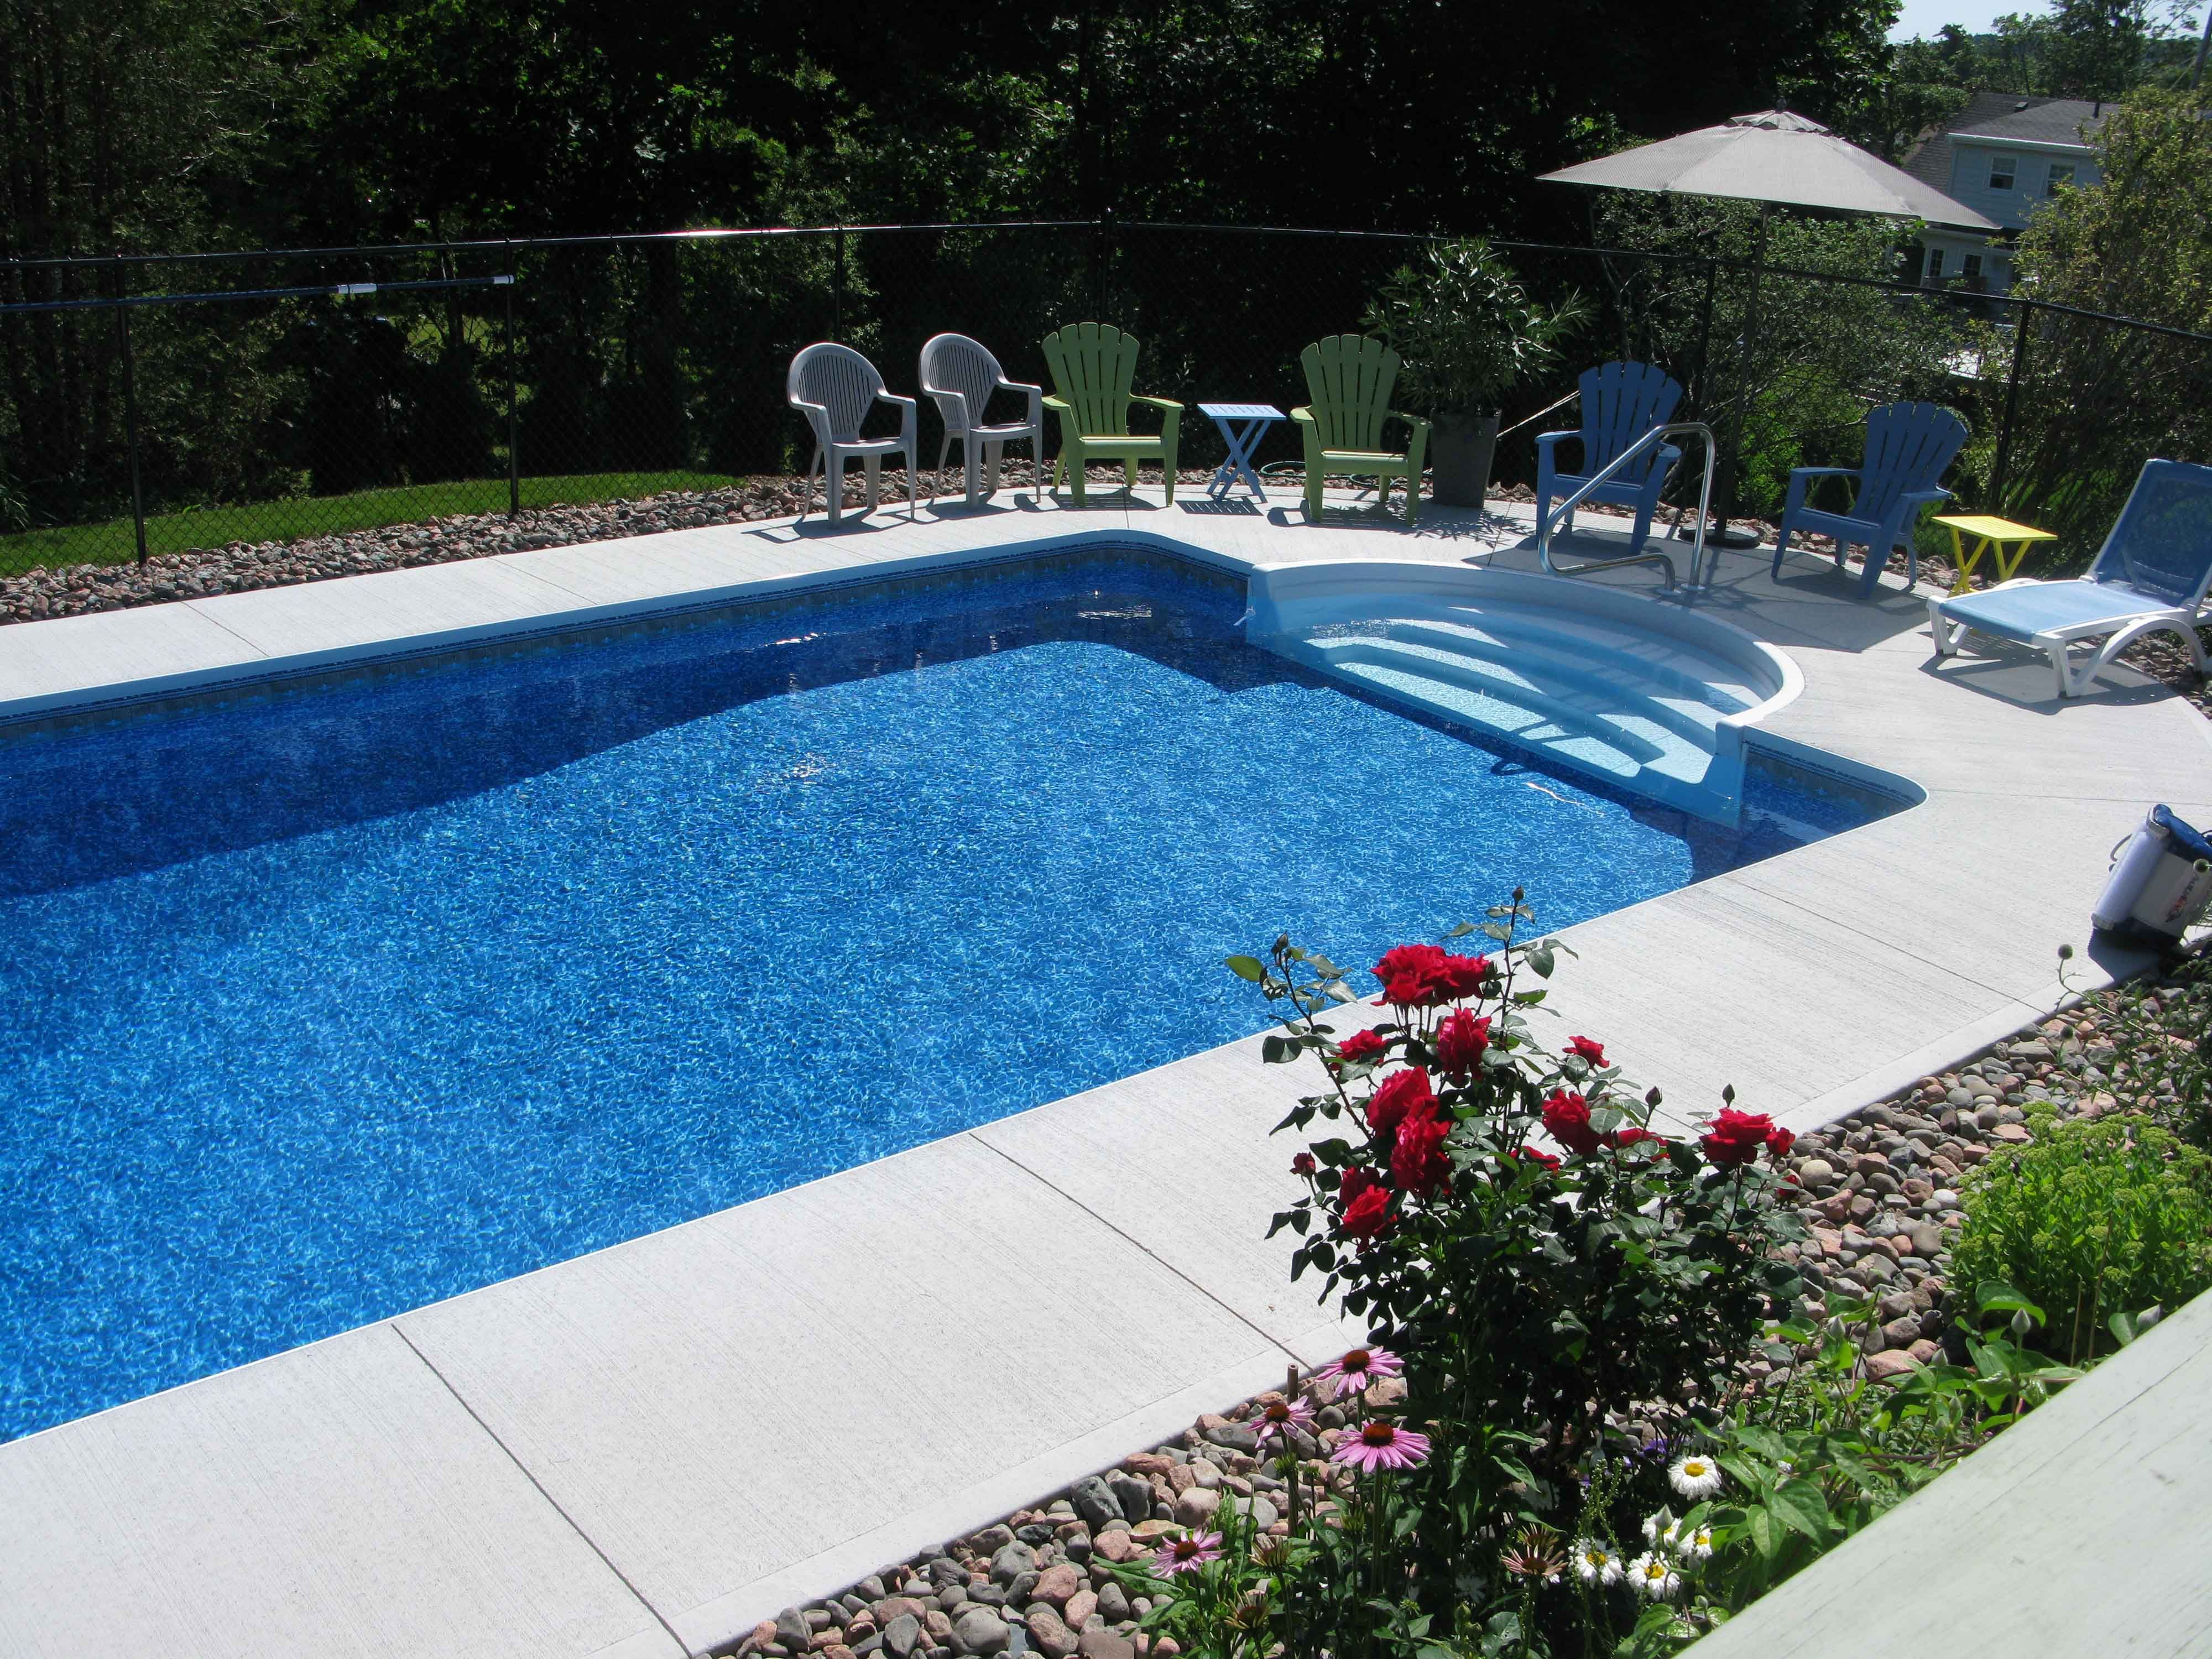 Traditional Inground Pool From Summer 2011 Super Clean Simple